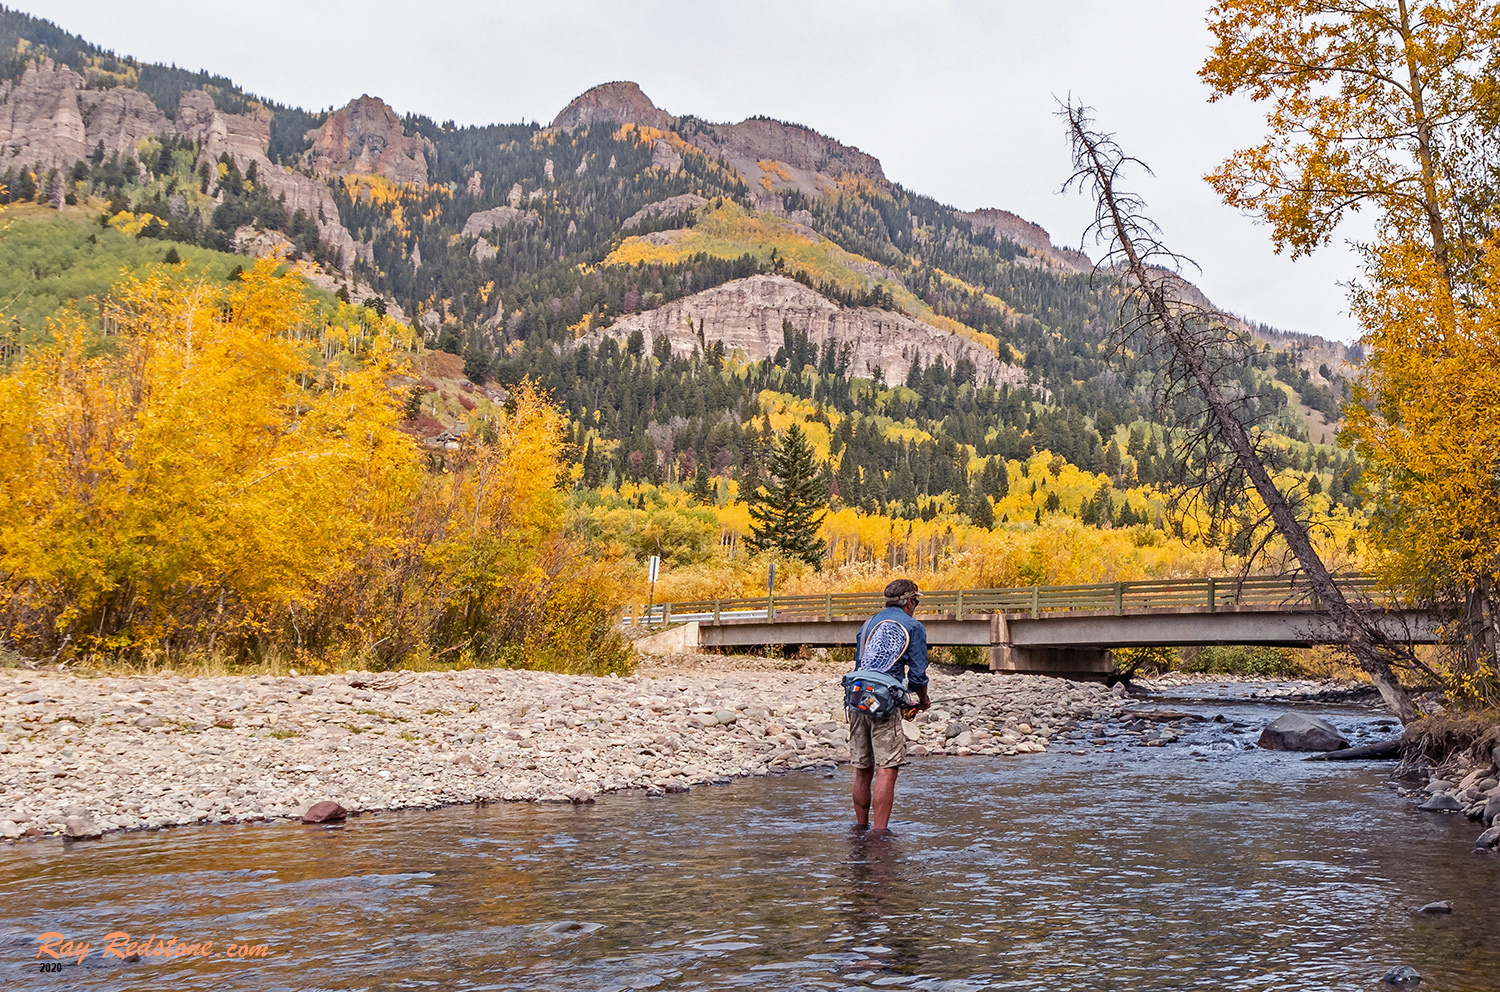 Man Fly-Fishing on a Colorado River At Fall Time by Ray Redstone